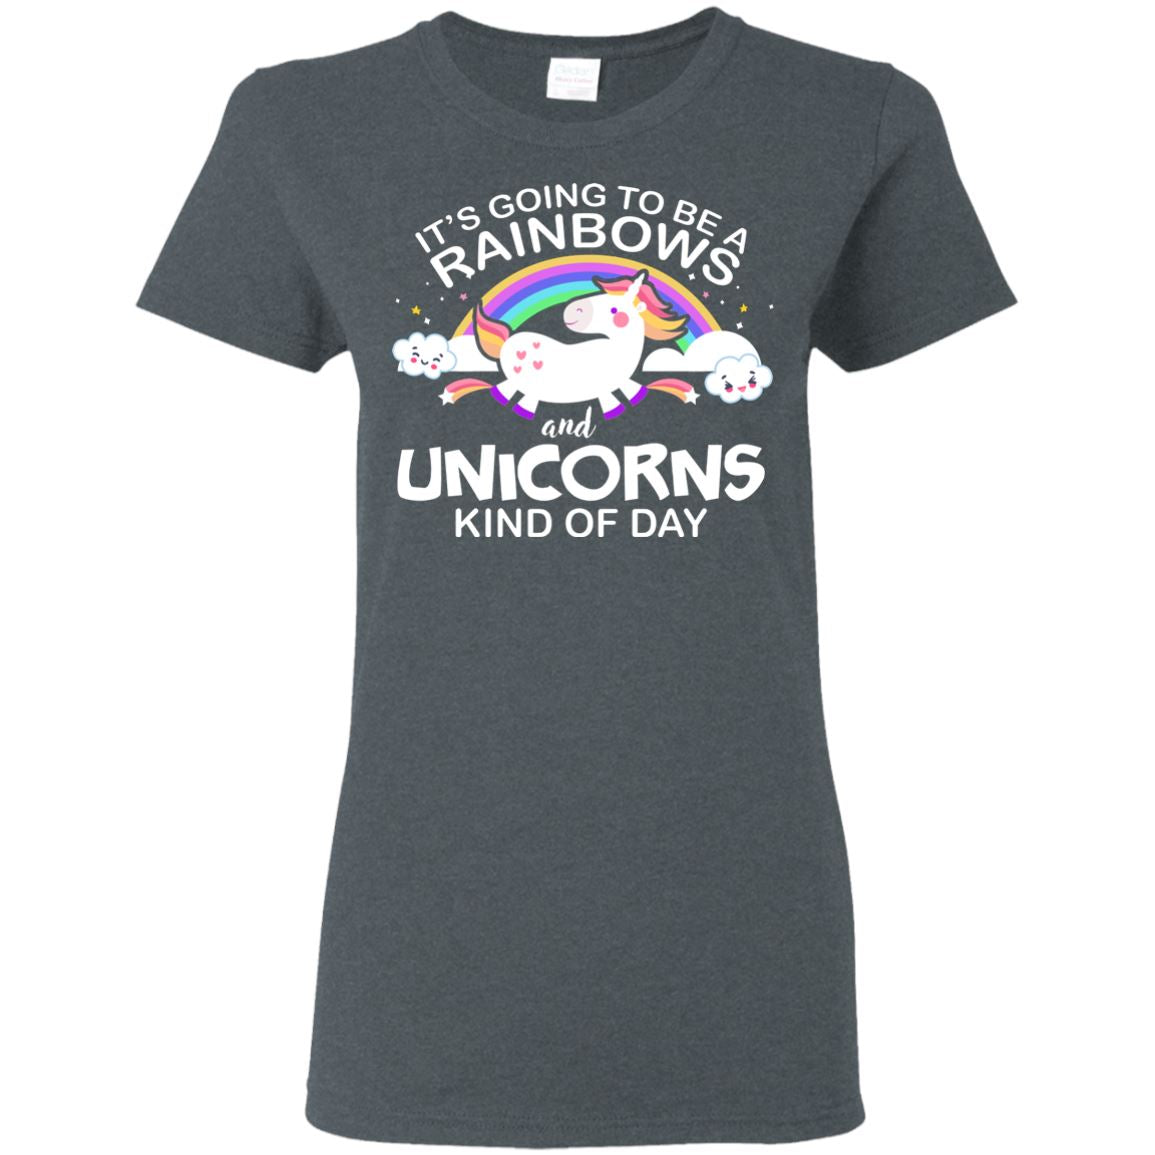 Unicorn & Rainbow Kind of Day Women's T-Shirt Apparel Dark Heather S